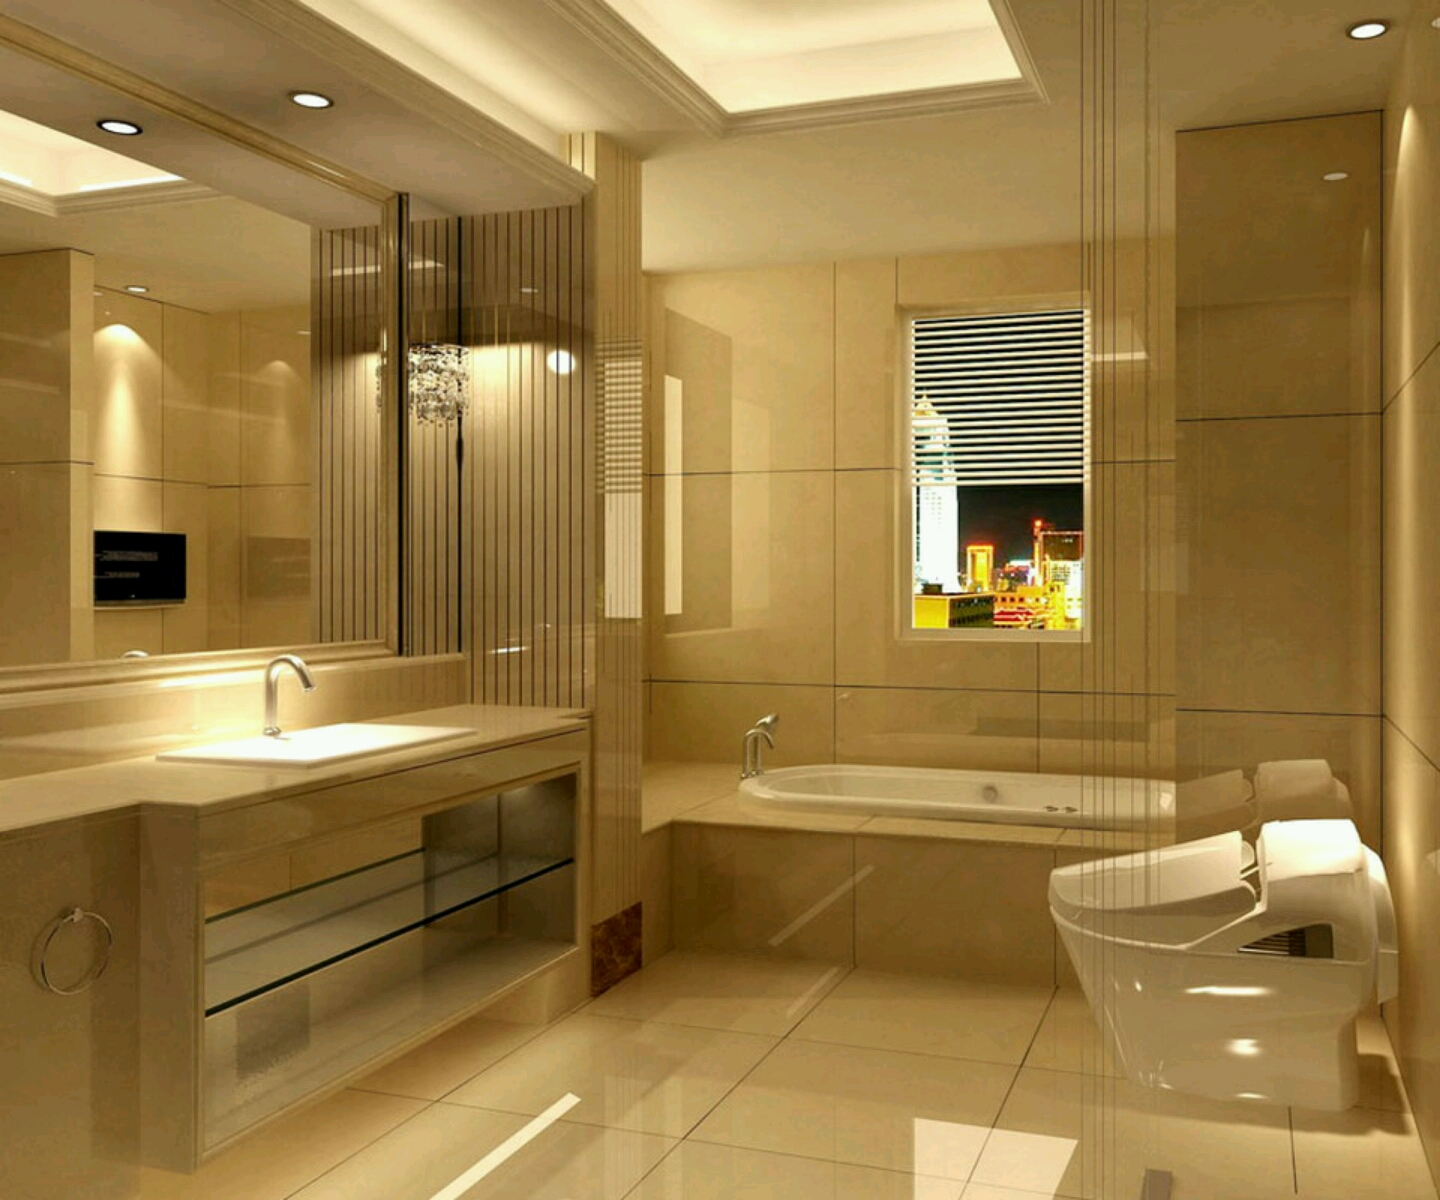 Modern bathrooms setting ideas furniture gallery for Bathroom designs photos